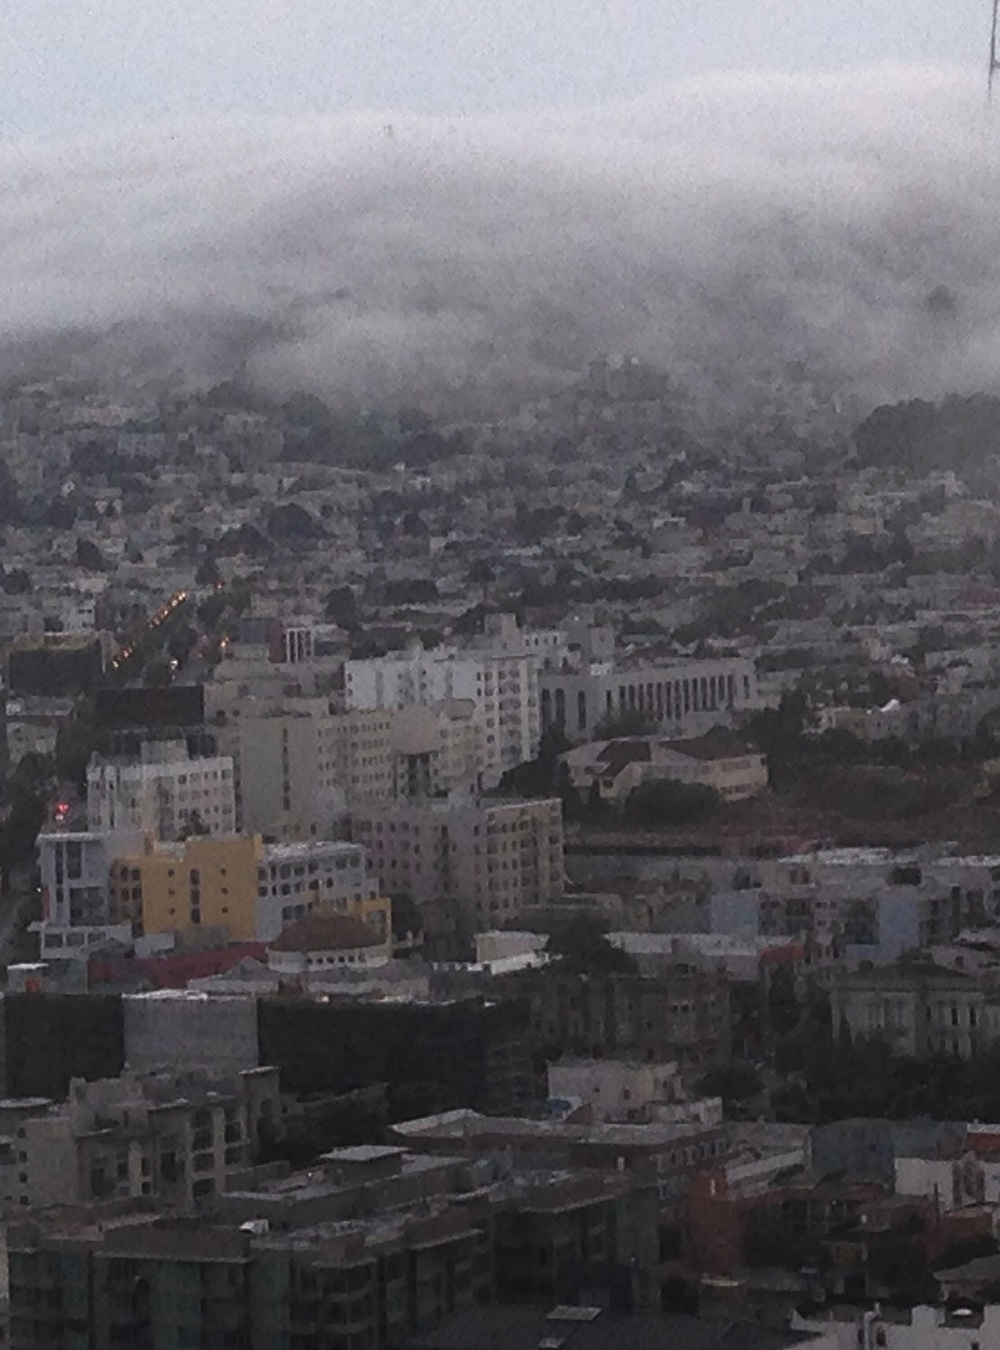 @ajlfx: Foggy tendrils of a metropolis cuddling to its #wine #beer #friends #fireplaces & #laughter tonight:  http://t.co/02inLOLVCT  | #SanFrancisco   http://click-to-read-mo.re/p/6wyZ